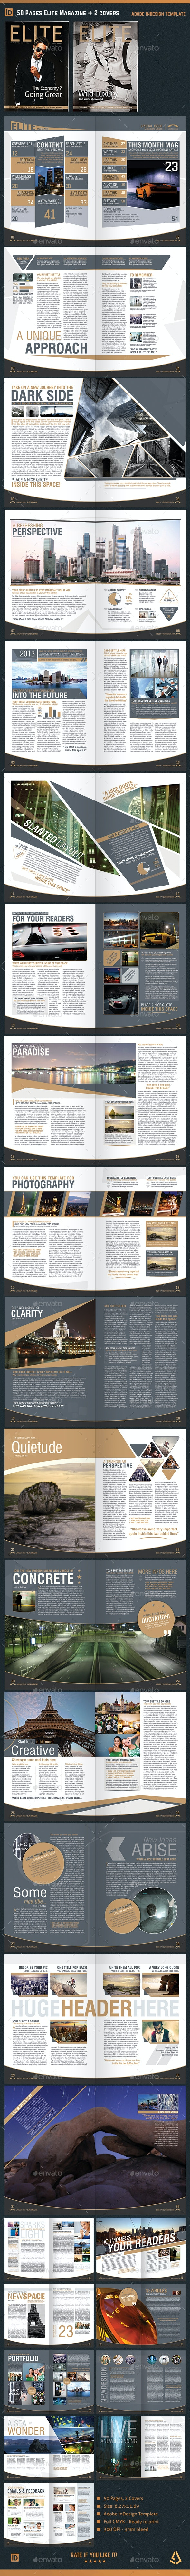 Elite Magazine Template InDesign 50 Pages + 2 Covers - Magazines Print Templates